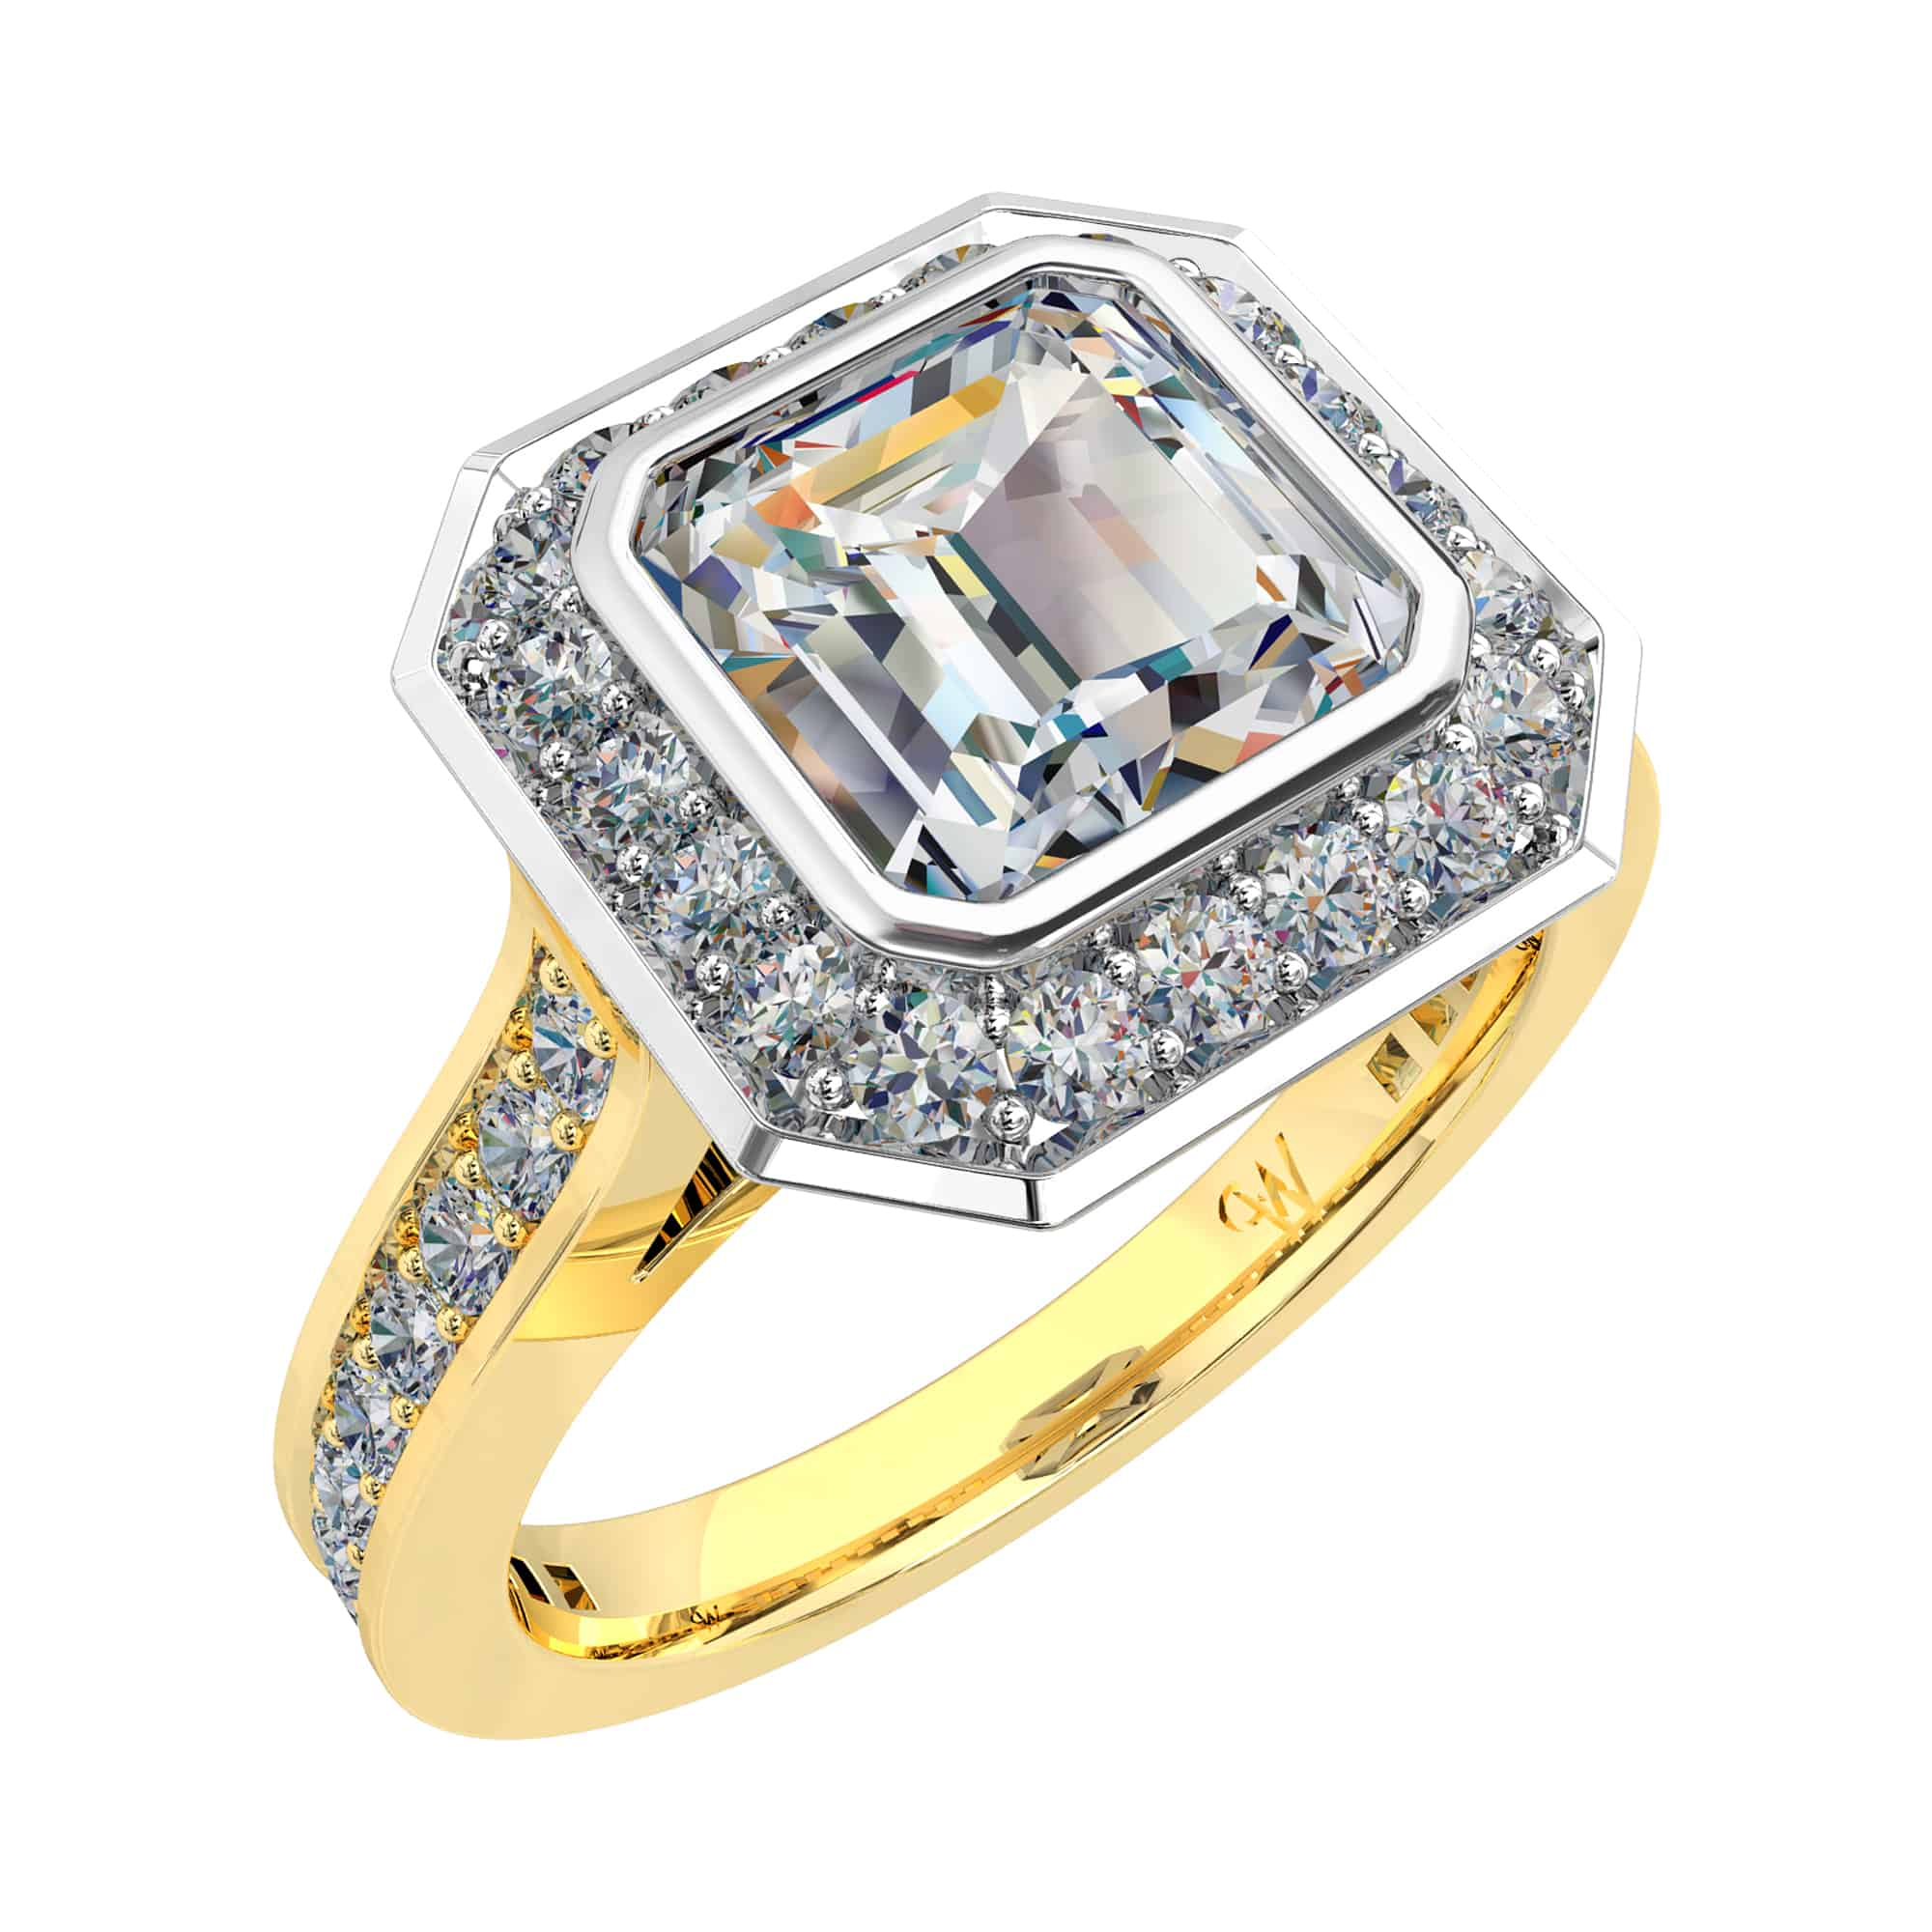 website beautiful engagement jewellrys of with cut asscher ring on attachment wedding jewellery awesome rings diamond finger